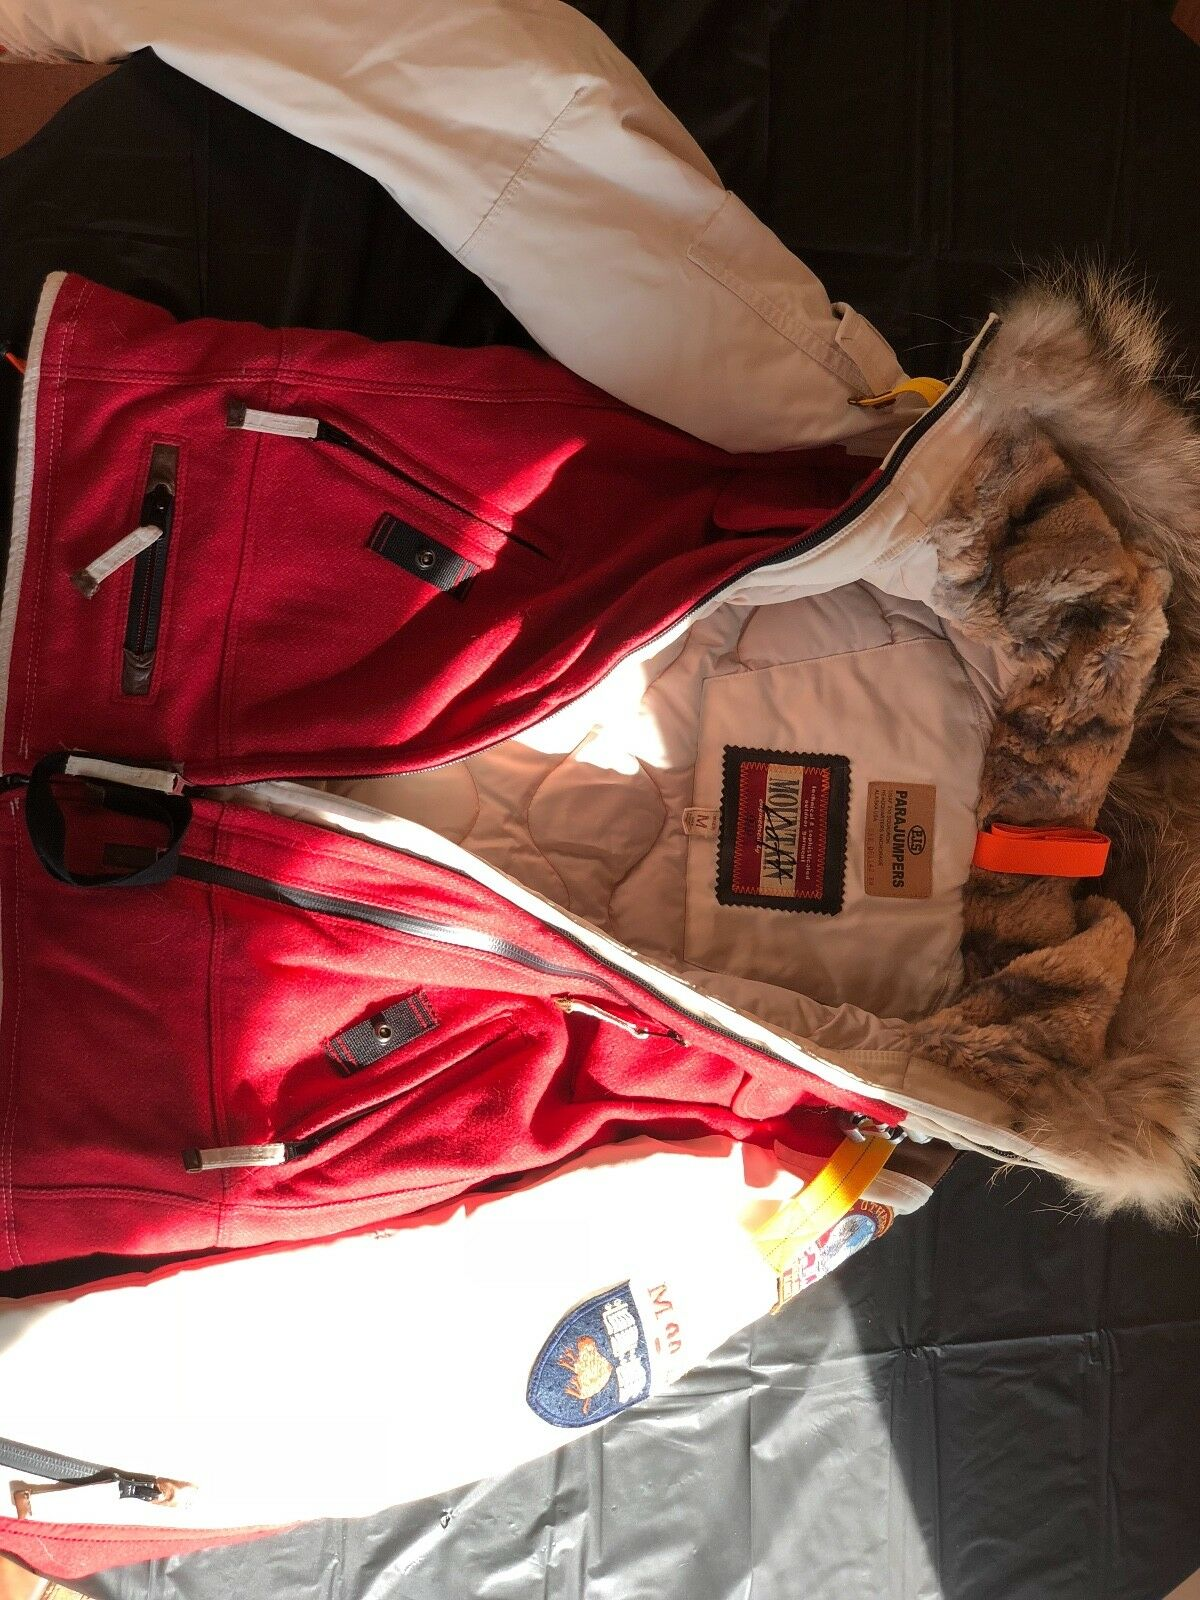 Parajumper  Swiss Fur Limited Edition Woman's 2 pc. Ski Suit (Med)  at the lowest price